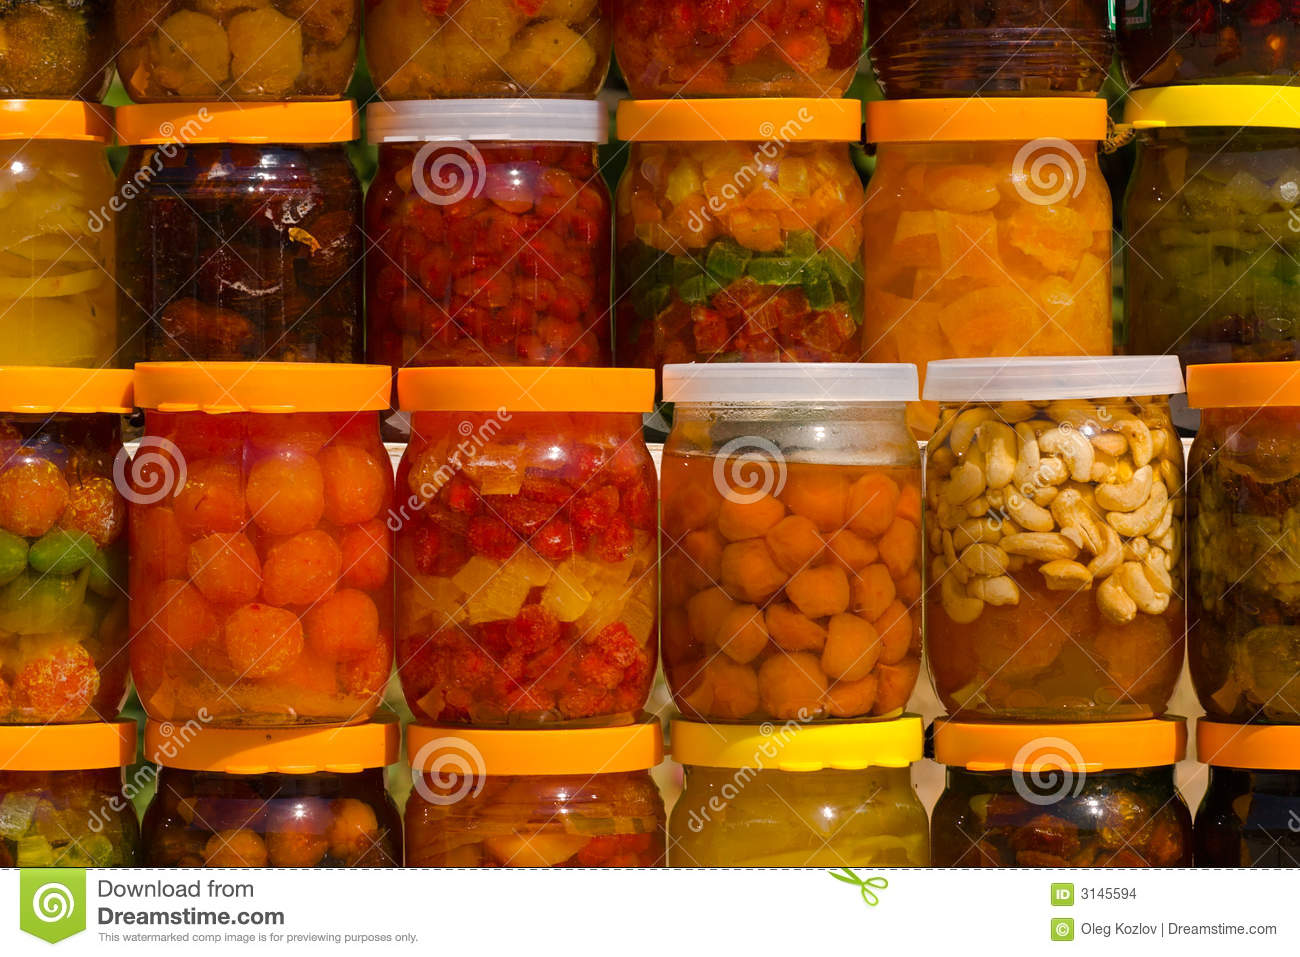 General Can food be recanned if the lid does not seal Canned food can safely be recanned if the unsealed jar is discovered within 24 hours To recan remove the